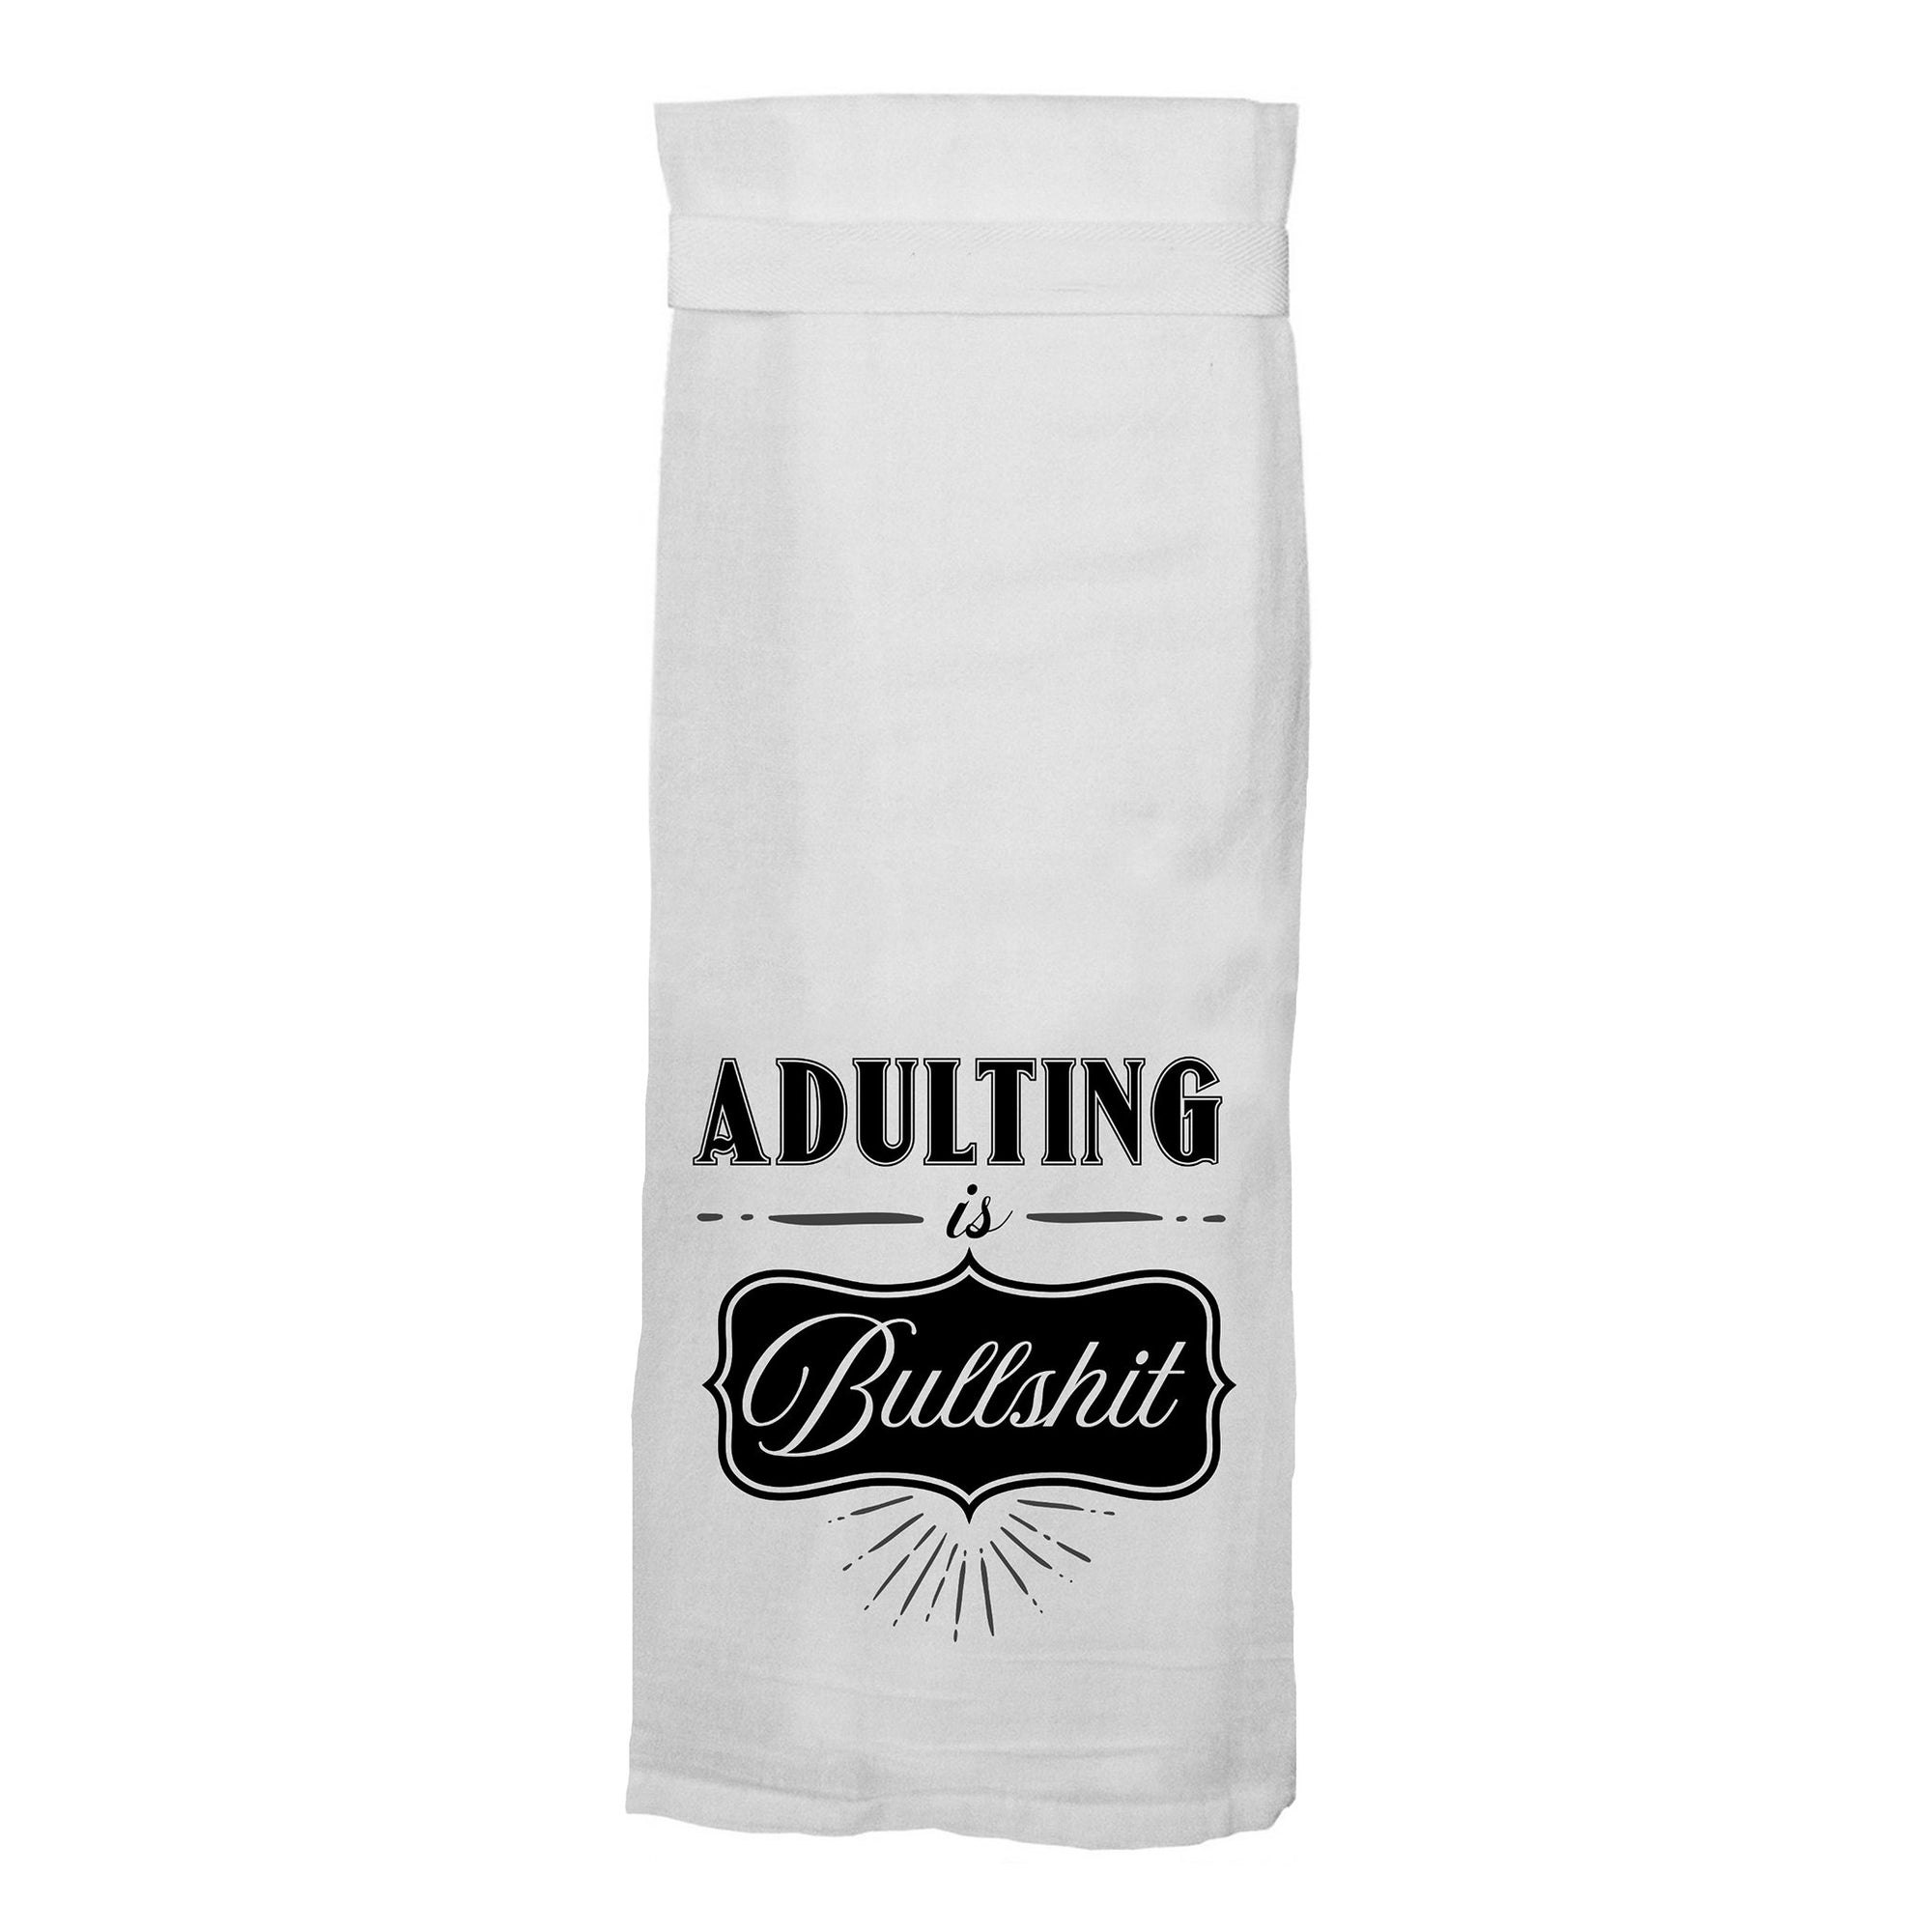 Adulting is Bullshit Hang Tight Towel - Heart of the Home PA